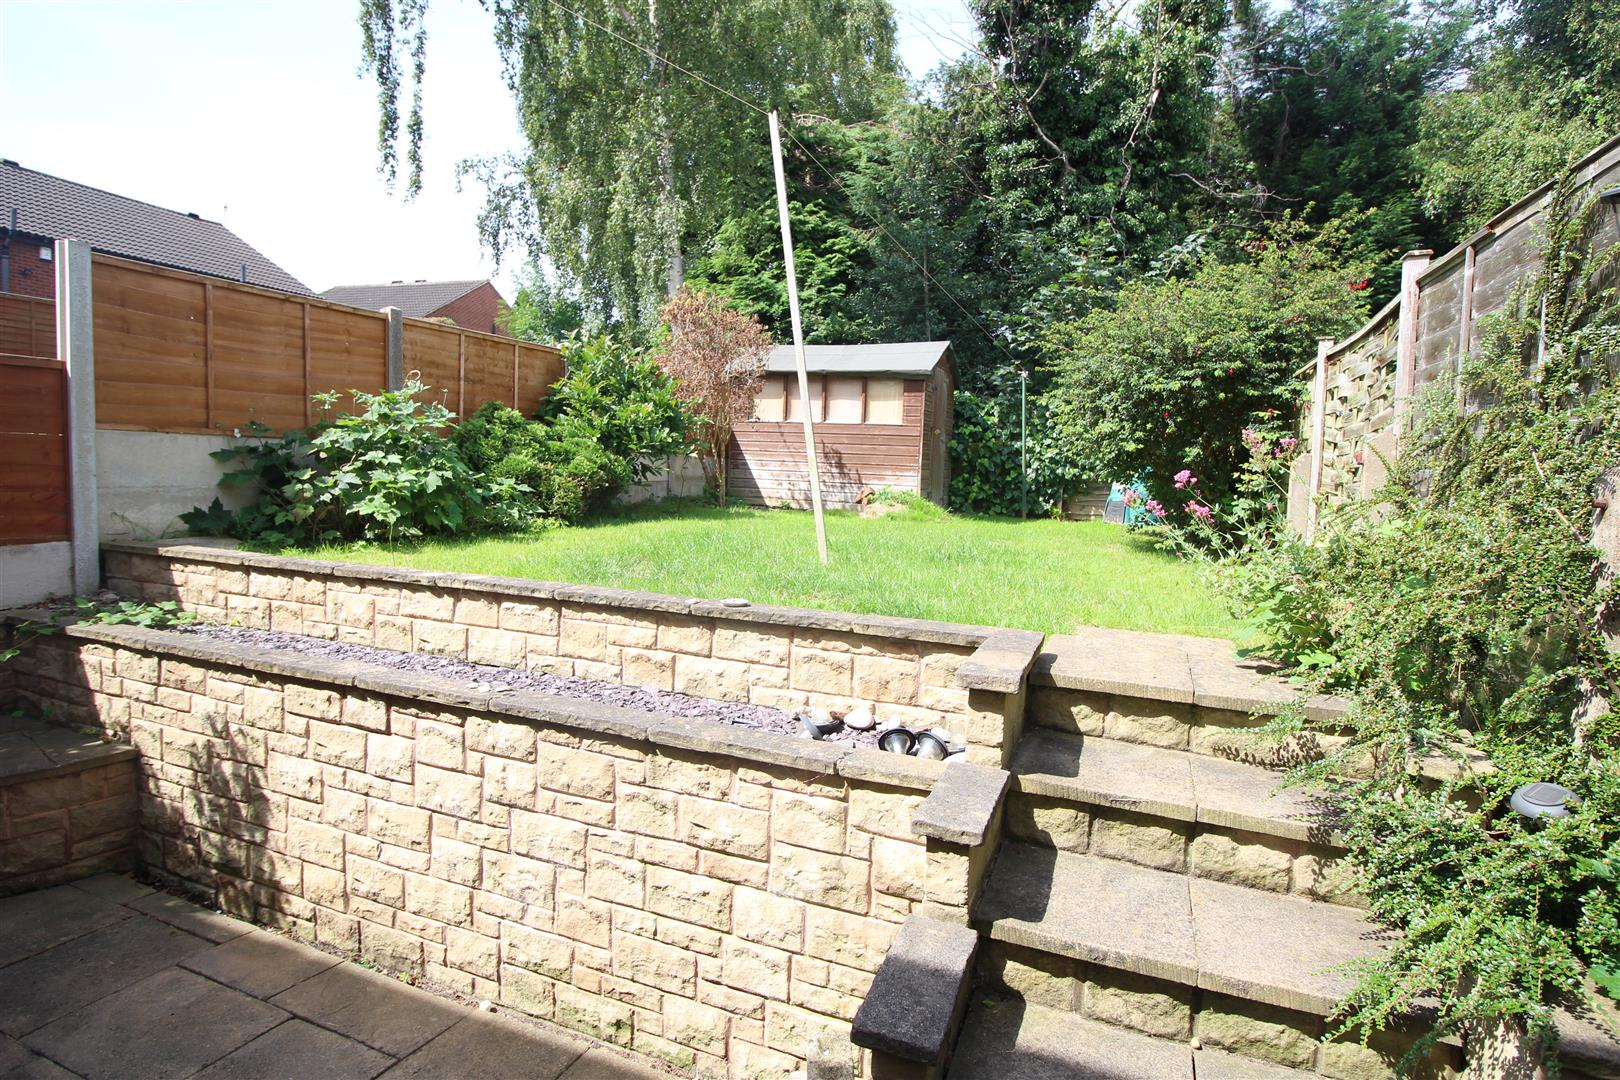 3 Bedrooms House for sale in Moores Avenue, Sandiacre